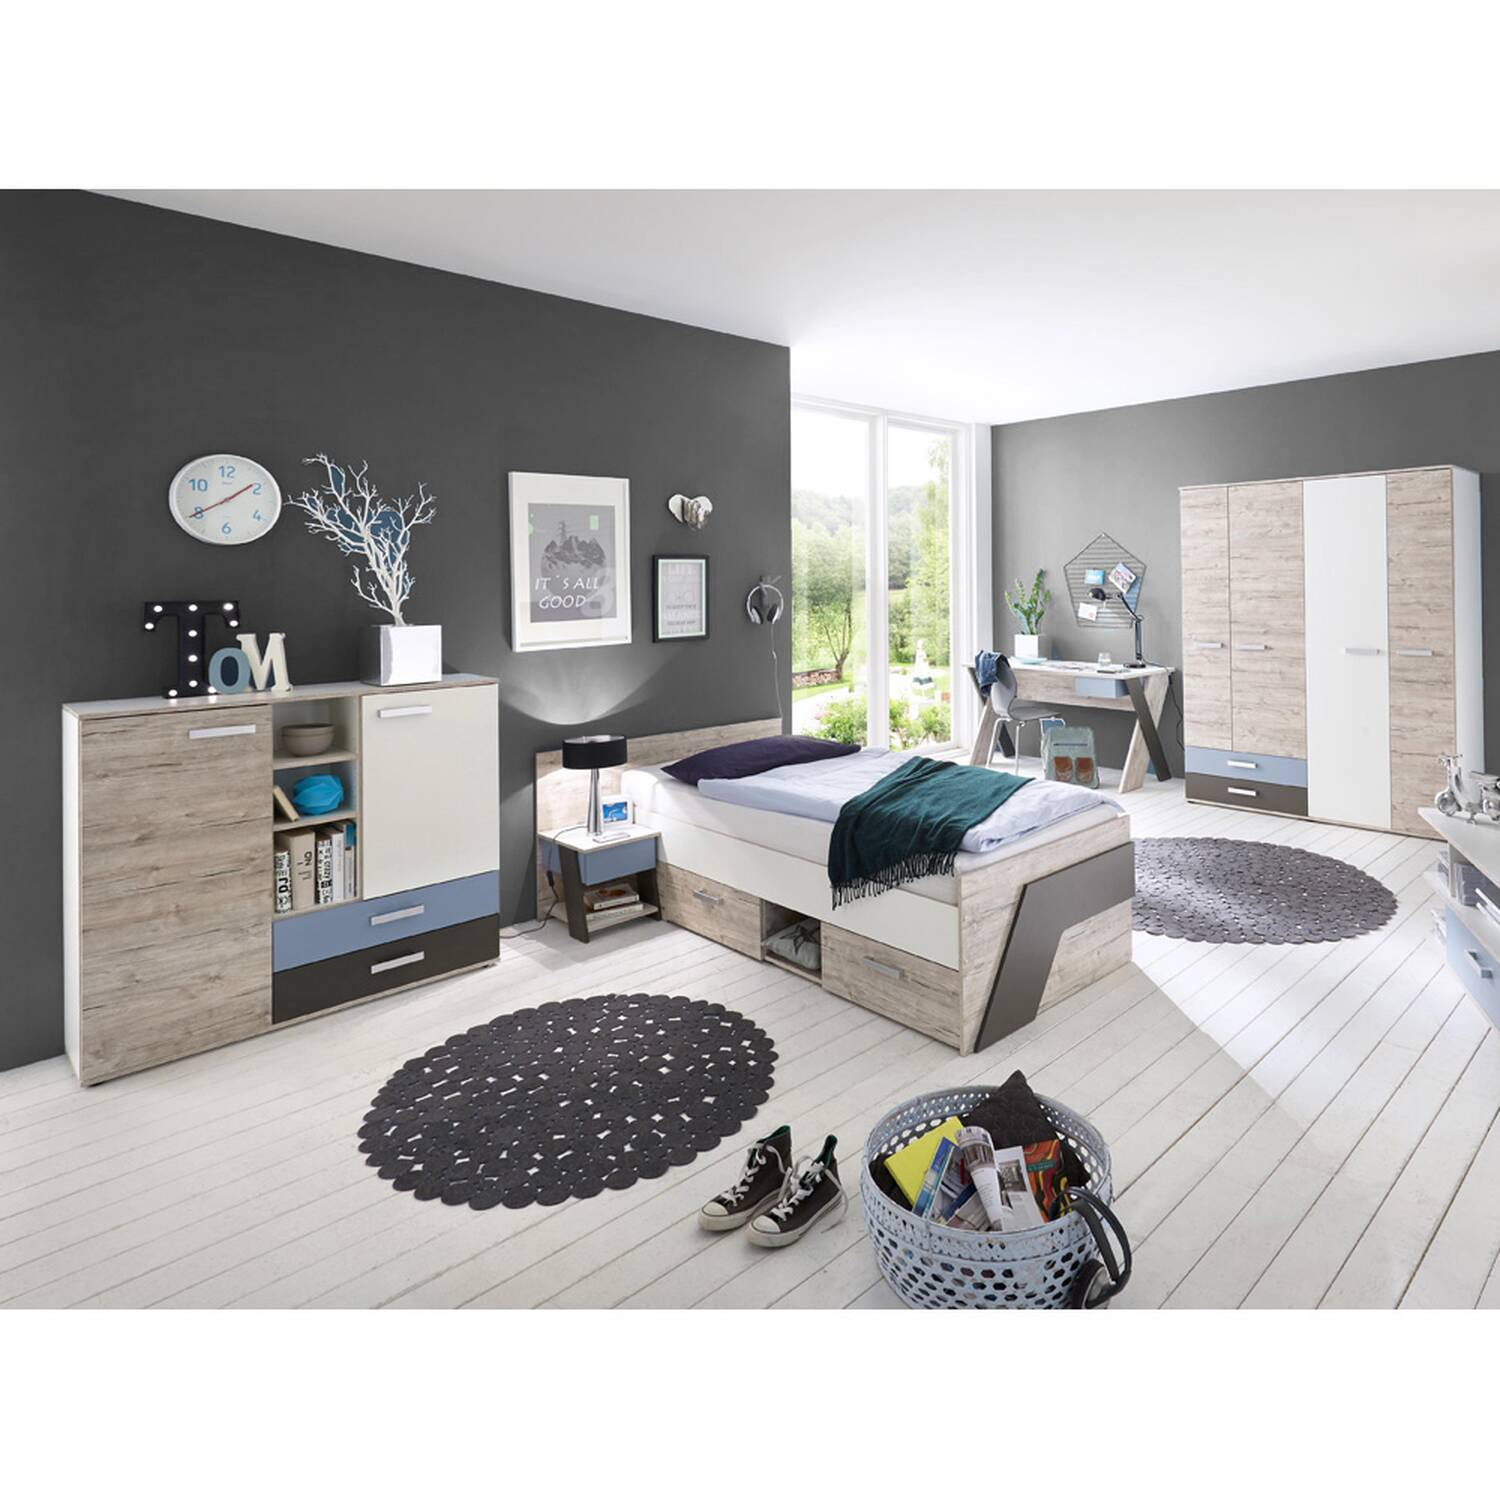 jugendzimmer set mit schreibtisch 5 teilig leeds 10 in sandeiche nb mit wei lava und denim. Black Bedroom Furniture Sets. Home Design Ideas